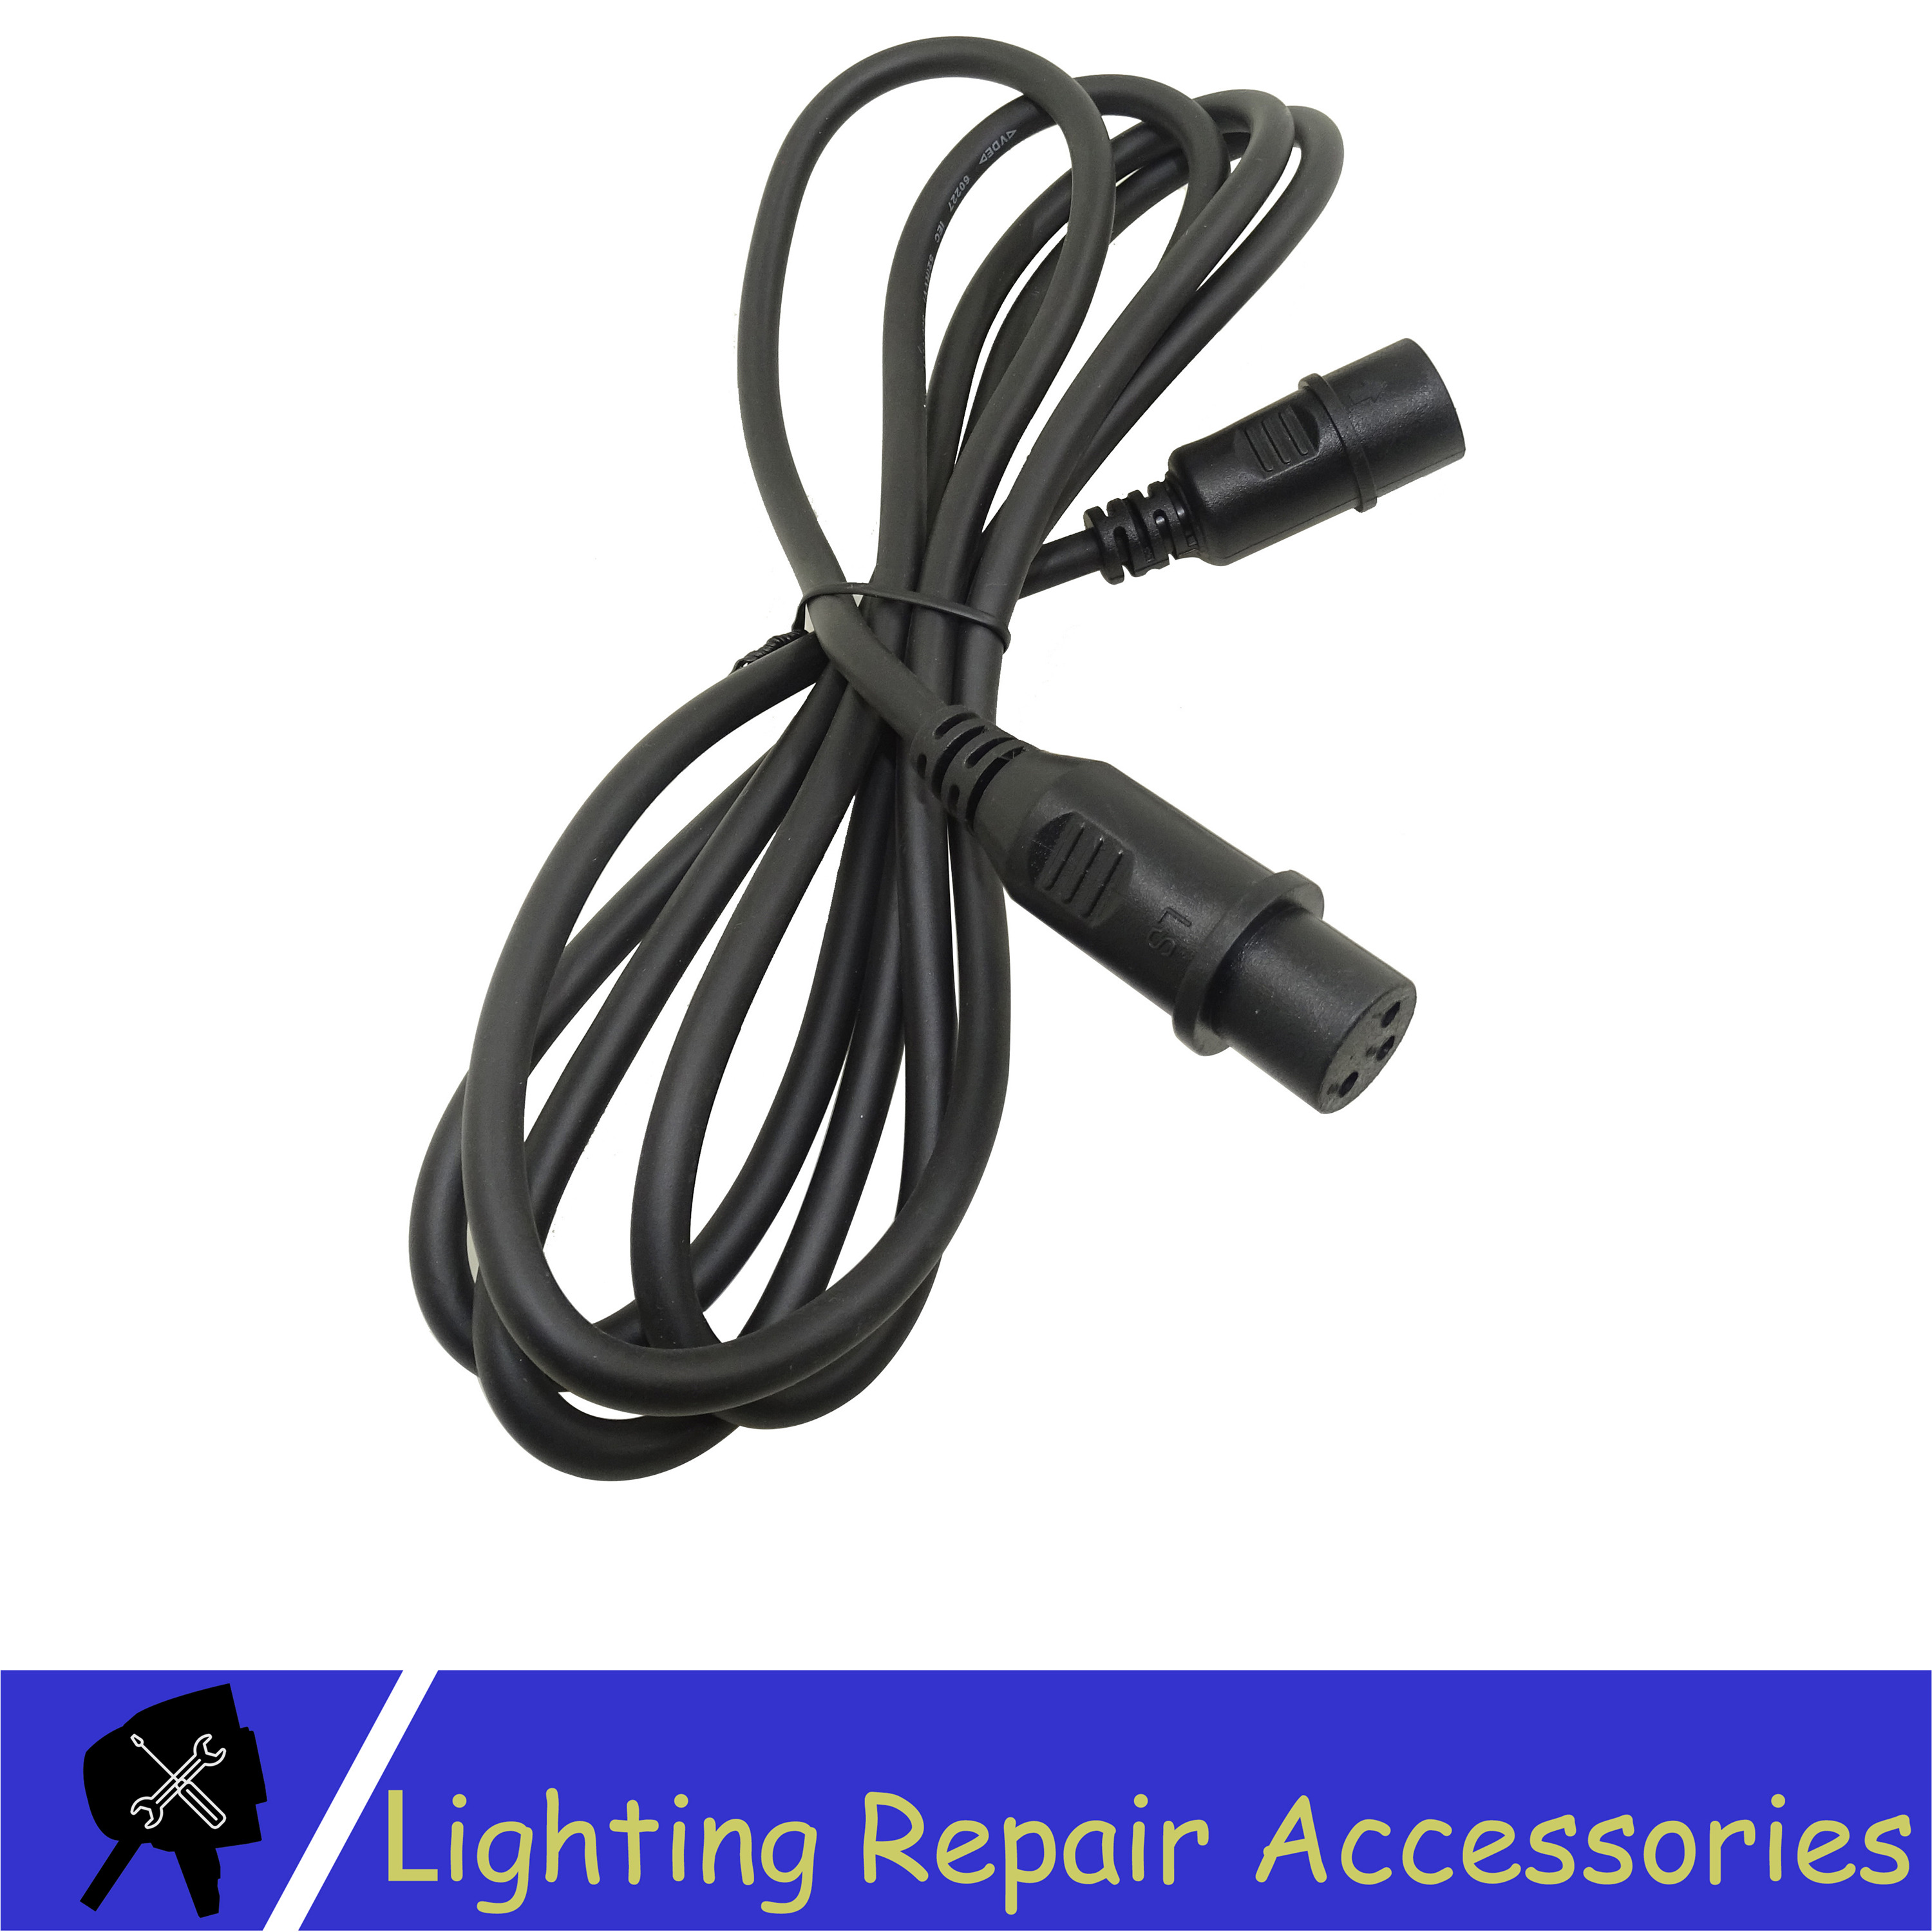 DMX Cable XLR 1.2 Meter 3pin Signal Connection Shielded XLR Male To Female For Led Par Light Moving Head